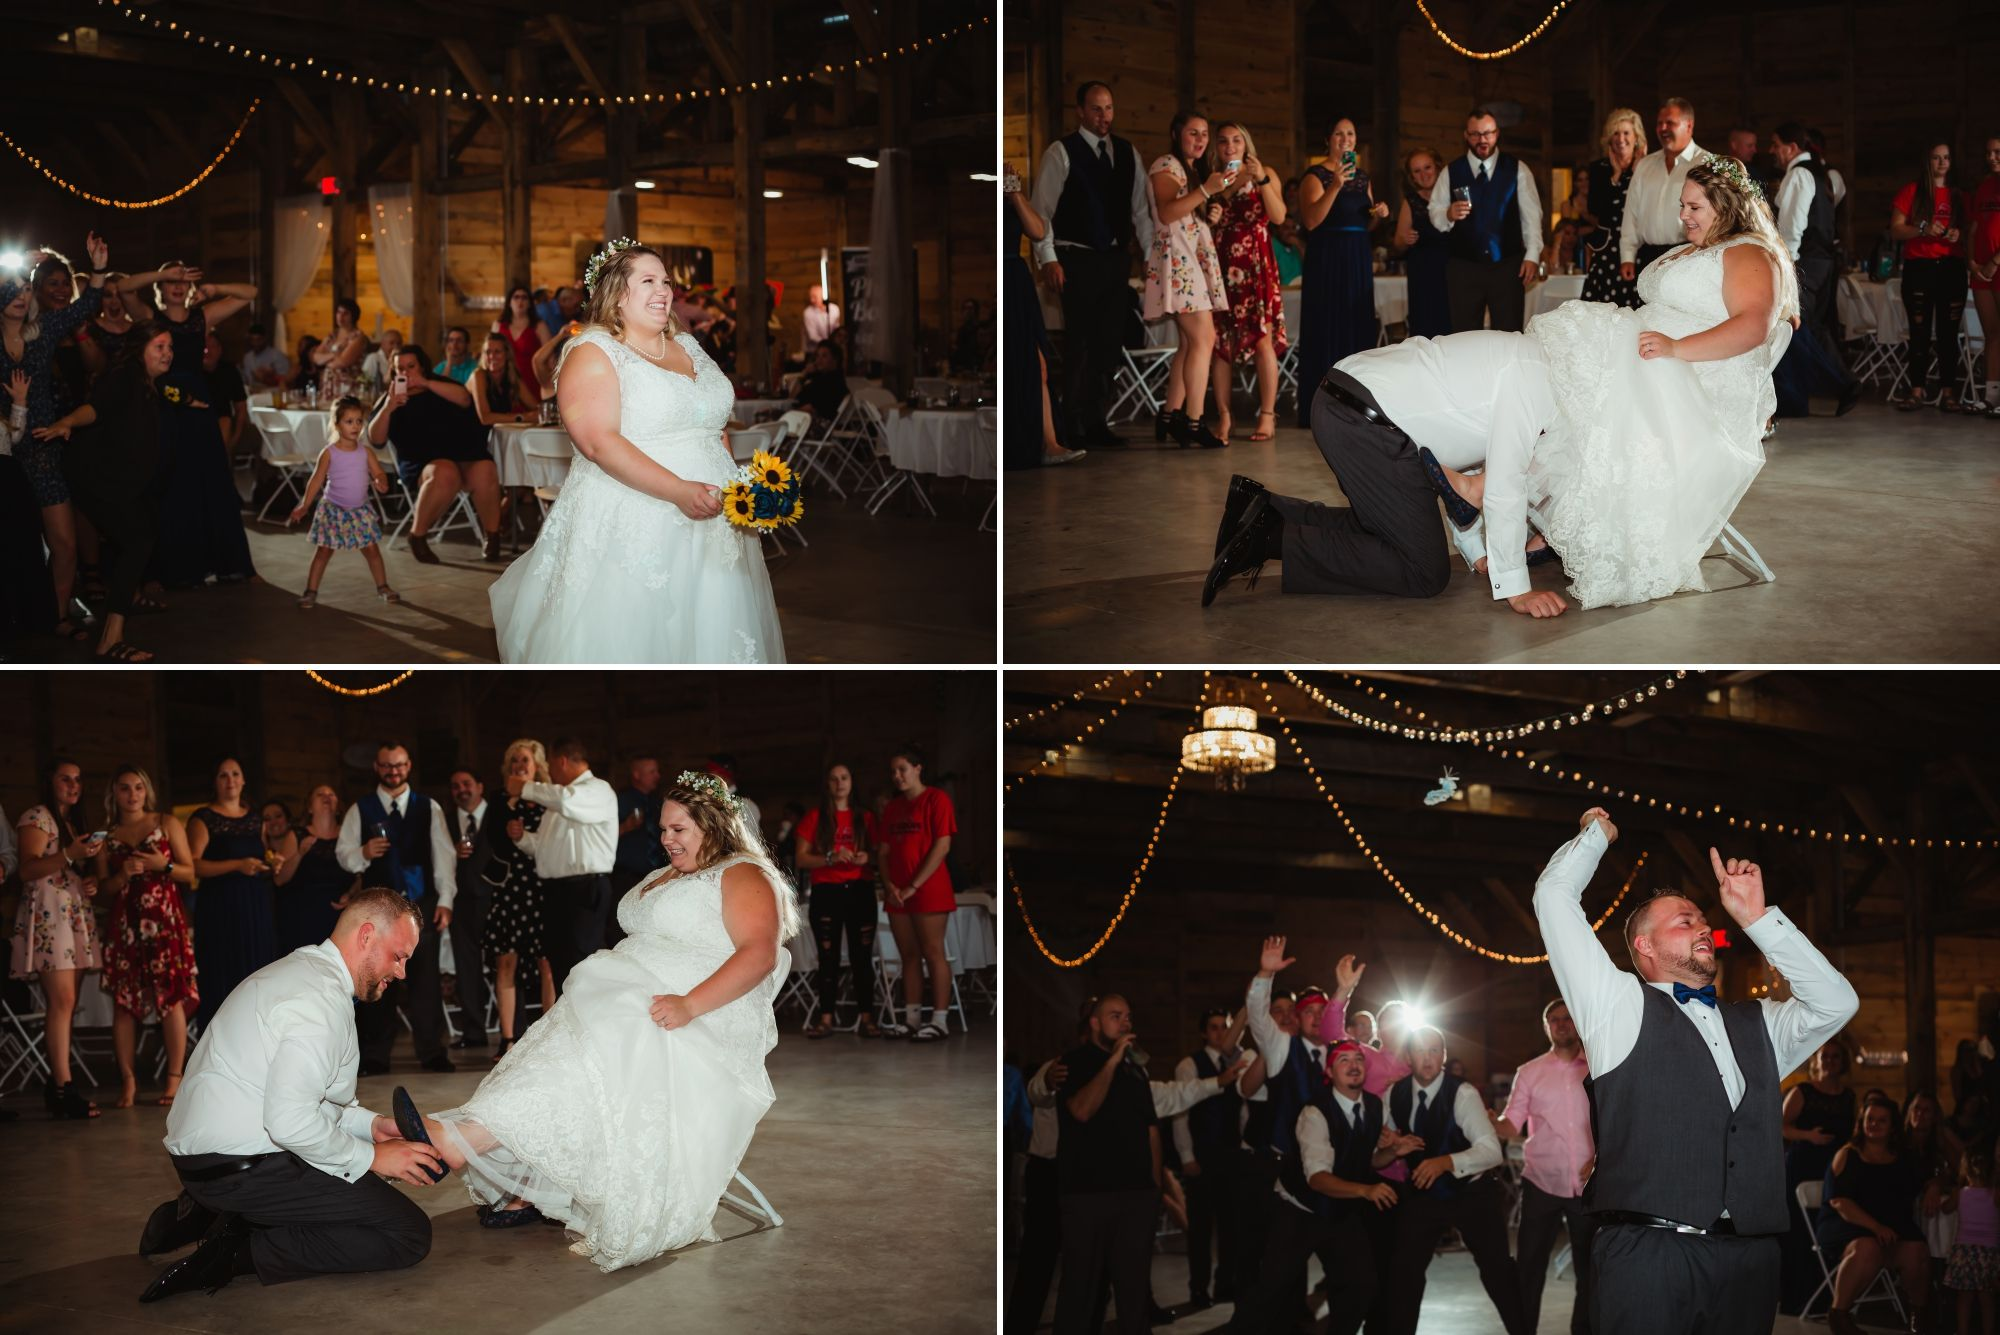 Collage of the bouquet and garter tosses.